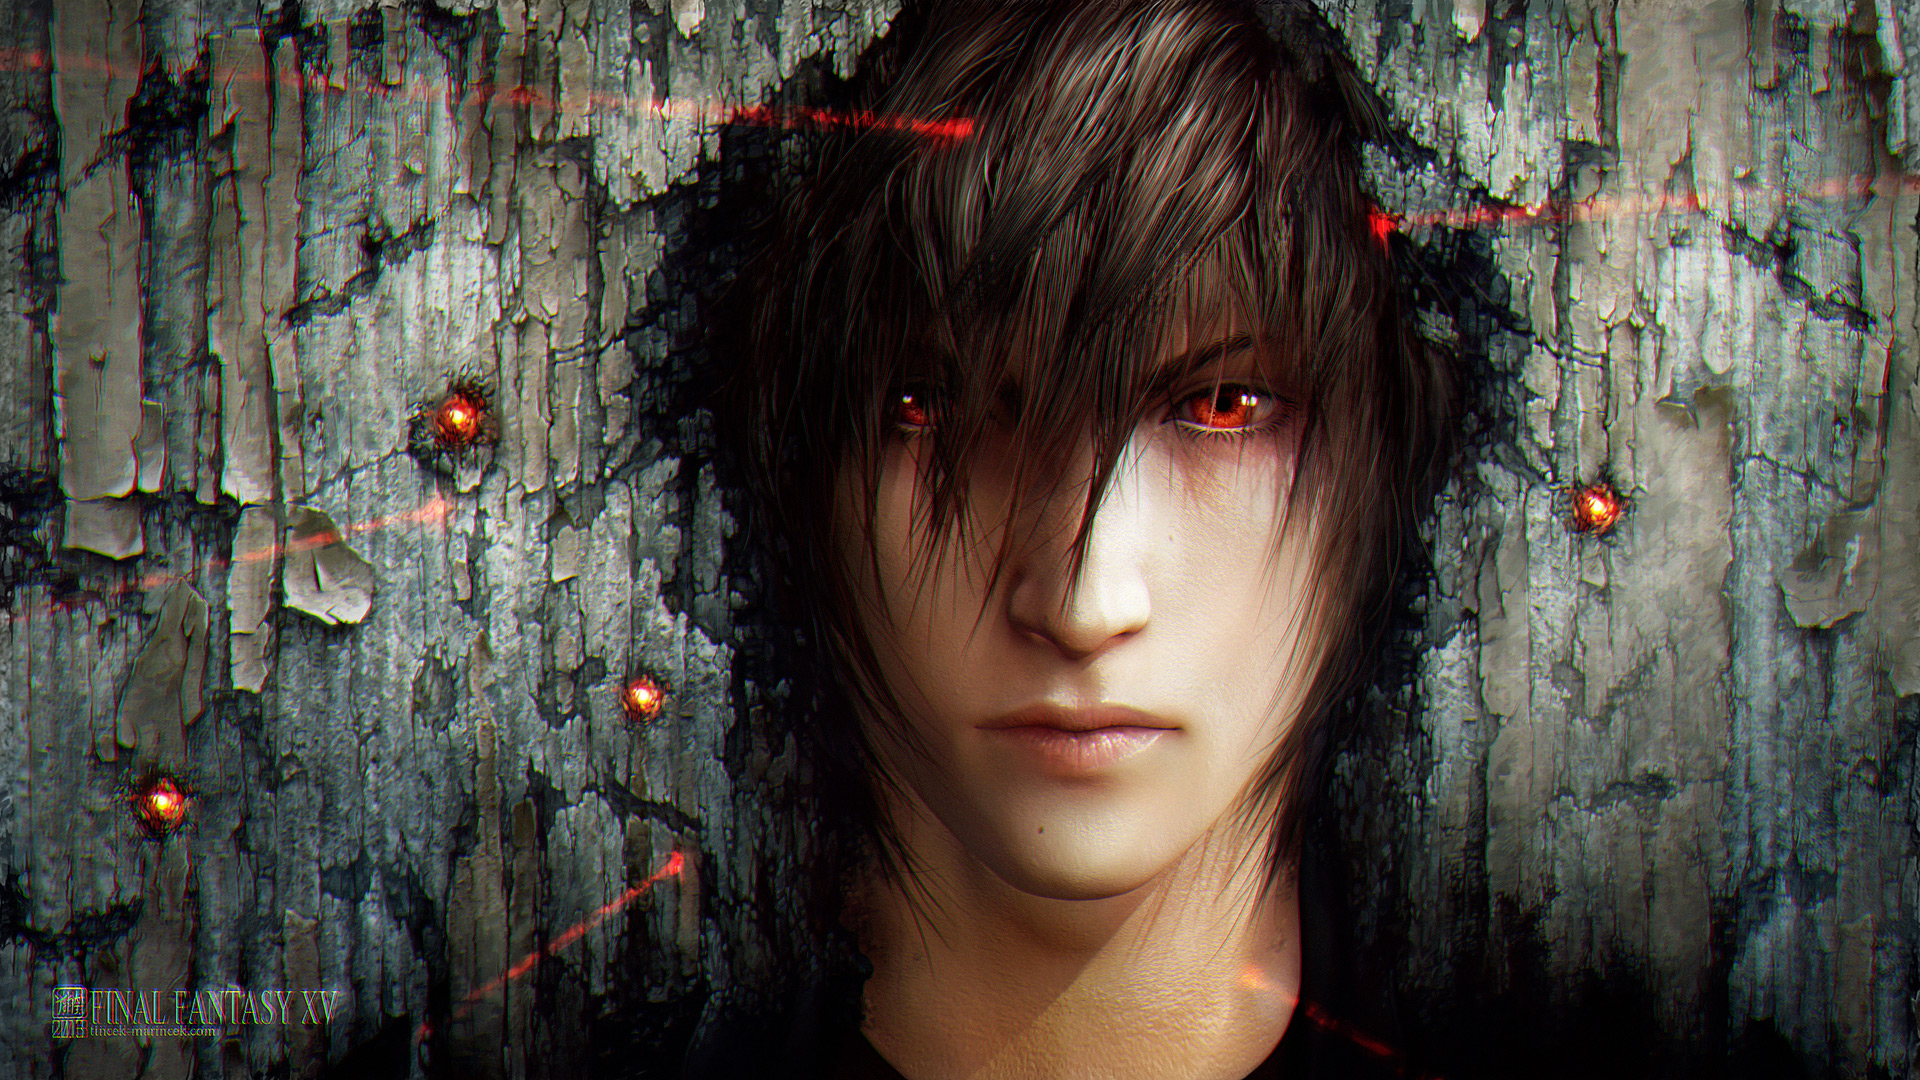 wallpaper: noctis - 2d digital, anime, videogamescoolvibe – digital art